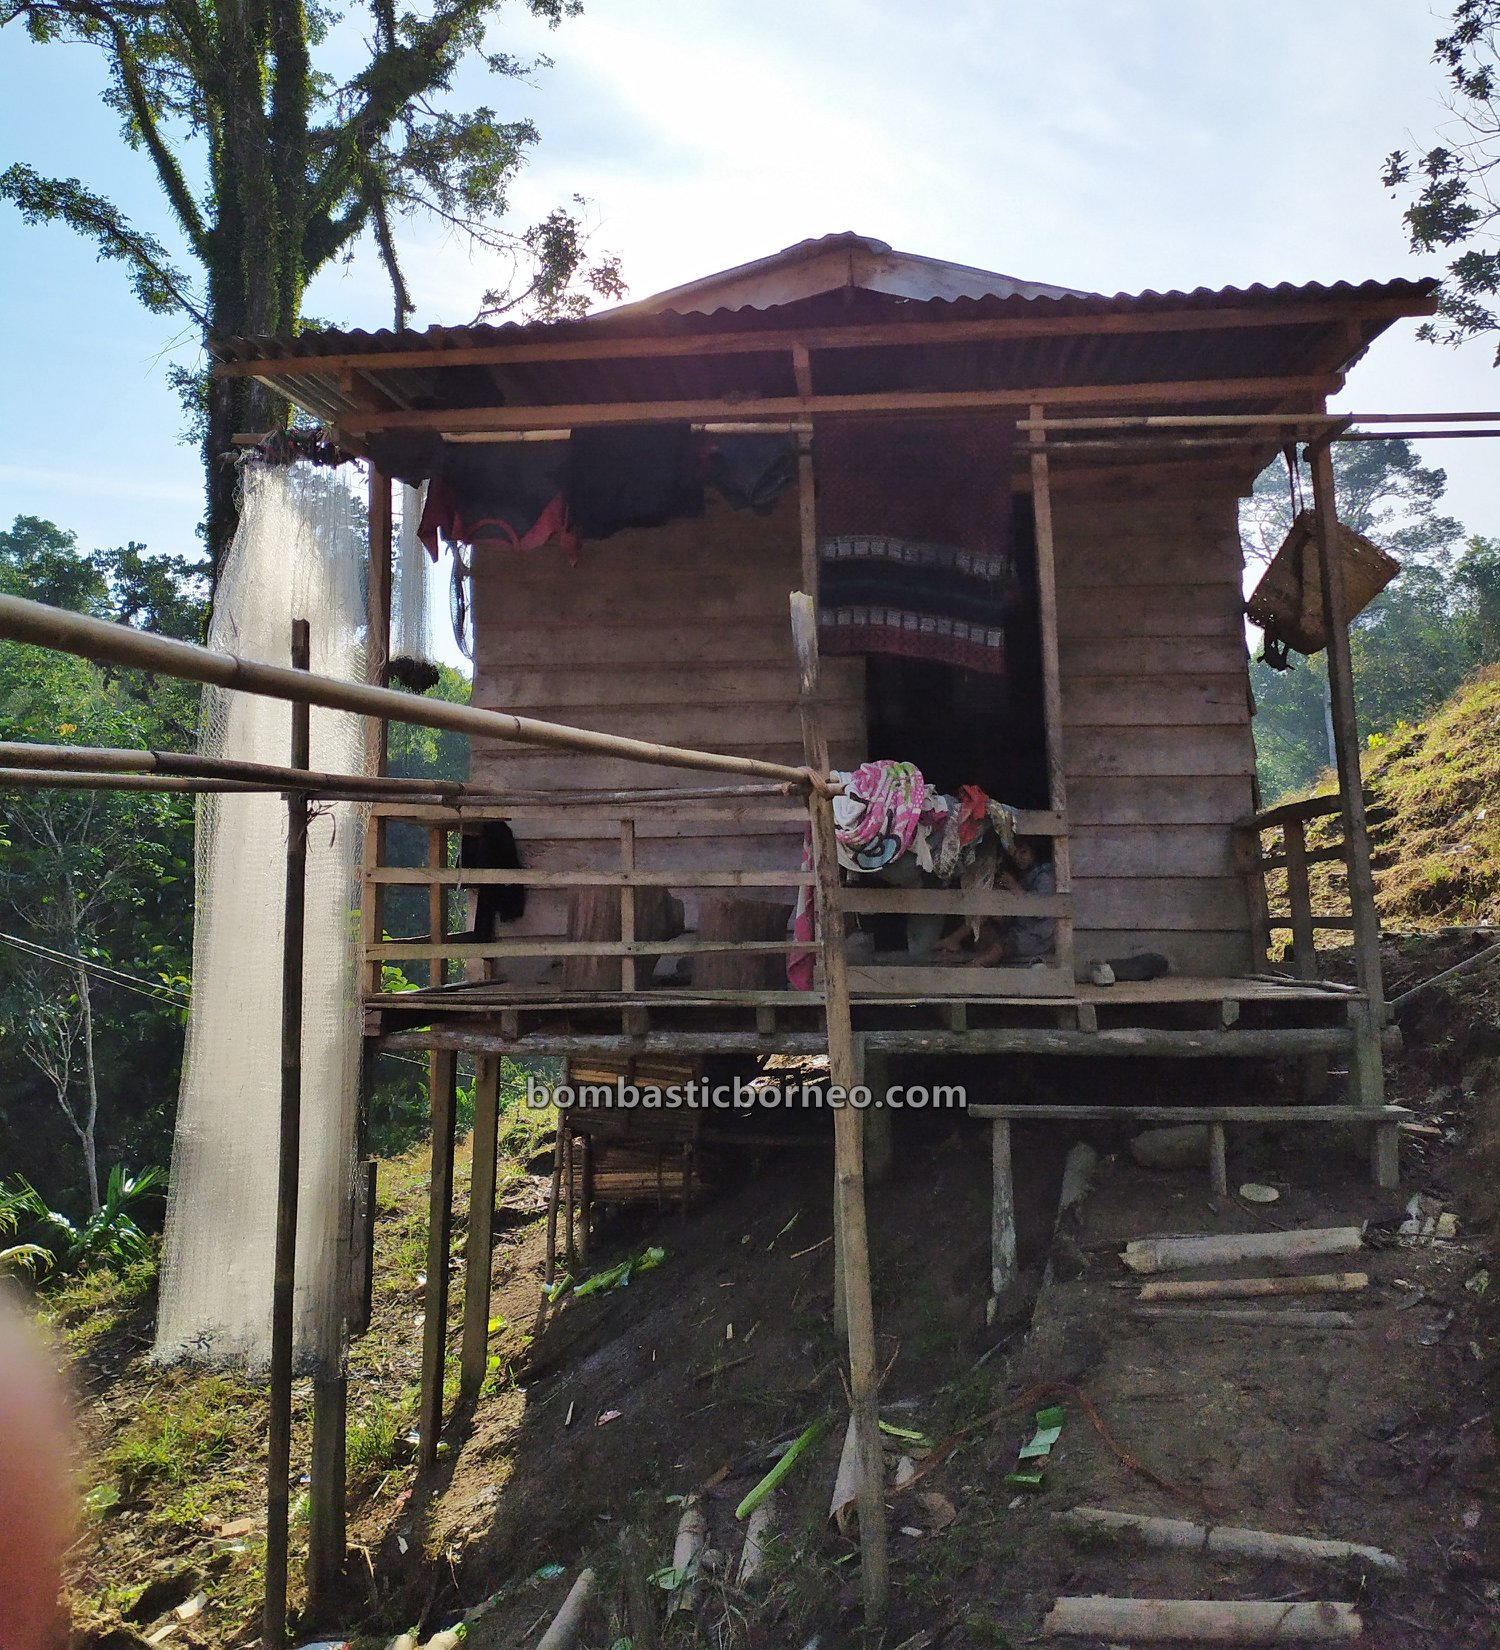 Sungkung Anep, Dusun Medeng, authentic, traditional, Bengkayang, Indonesia, West Kalimantan, native, tribe, highland, village, Tourism, Travel guide, Cross Border, Borneo